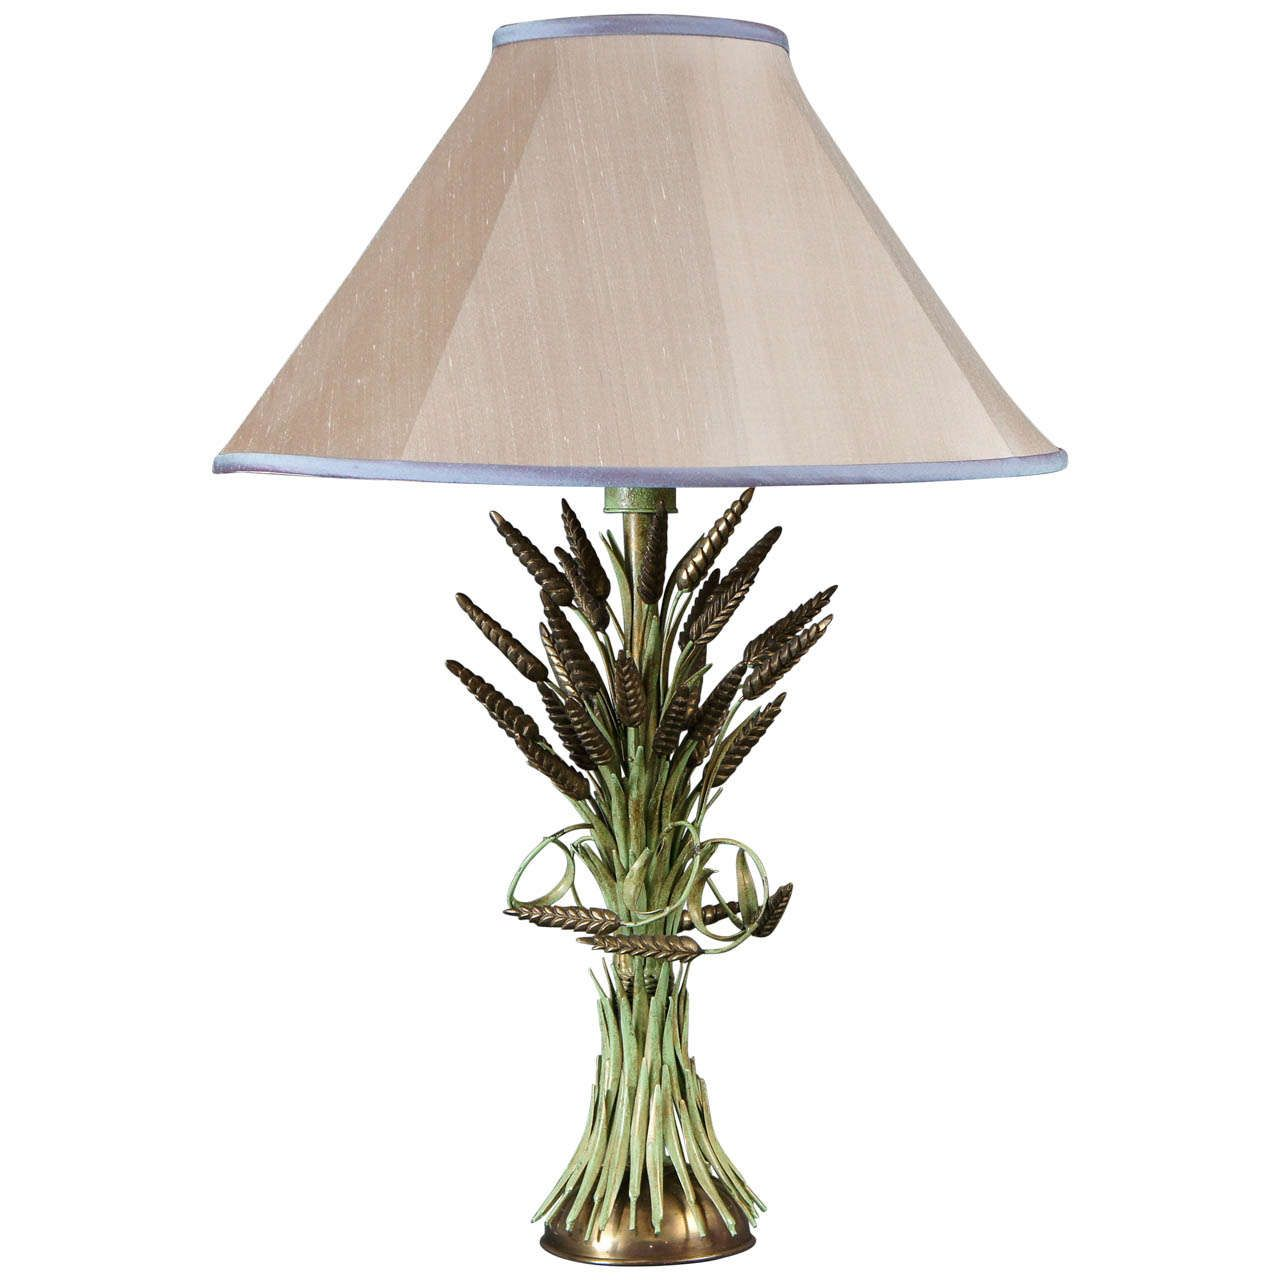 Single Brass And Green Painted Tole Wheat Sheaf Lamp In 2020 Lamp Table Lamp Wood French Table Lamp